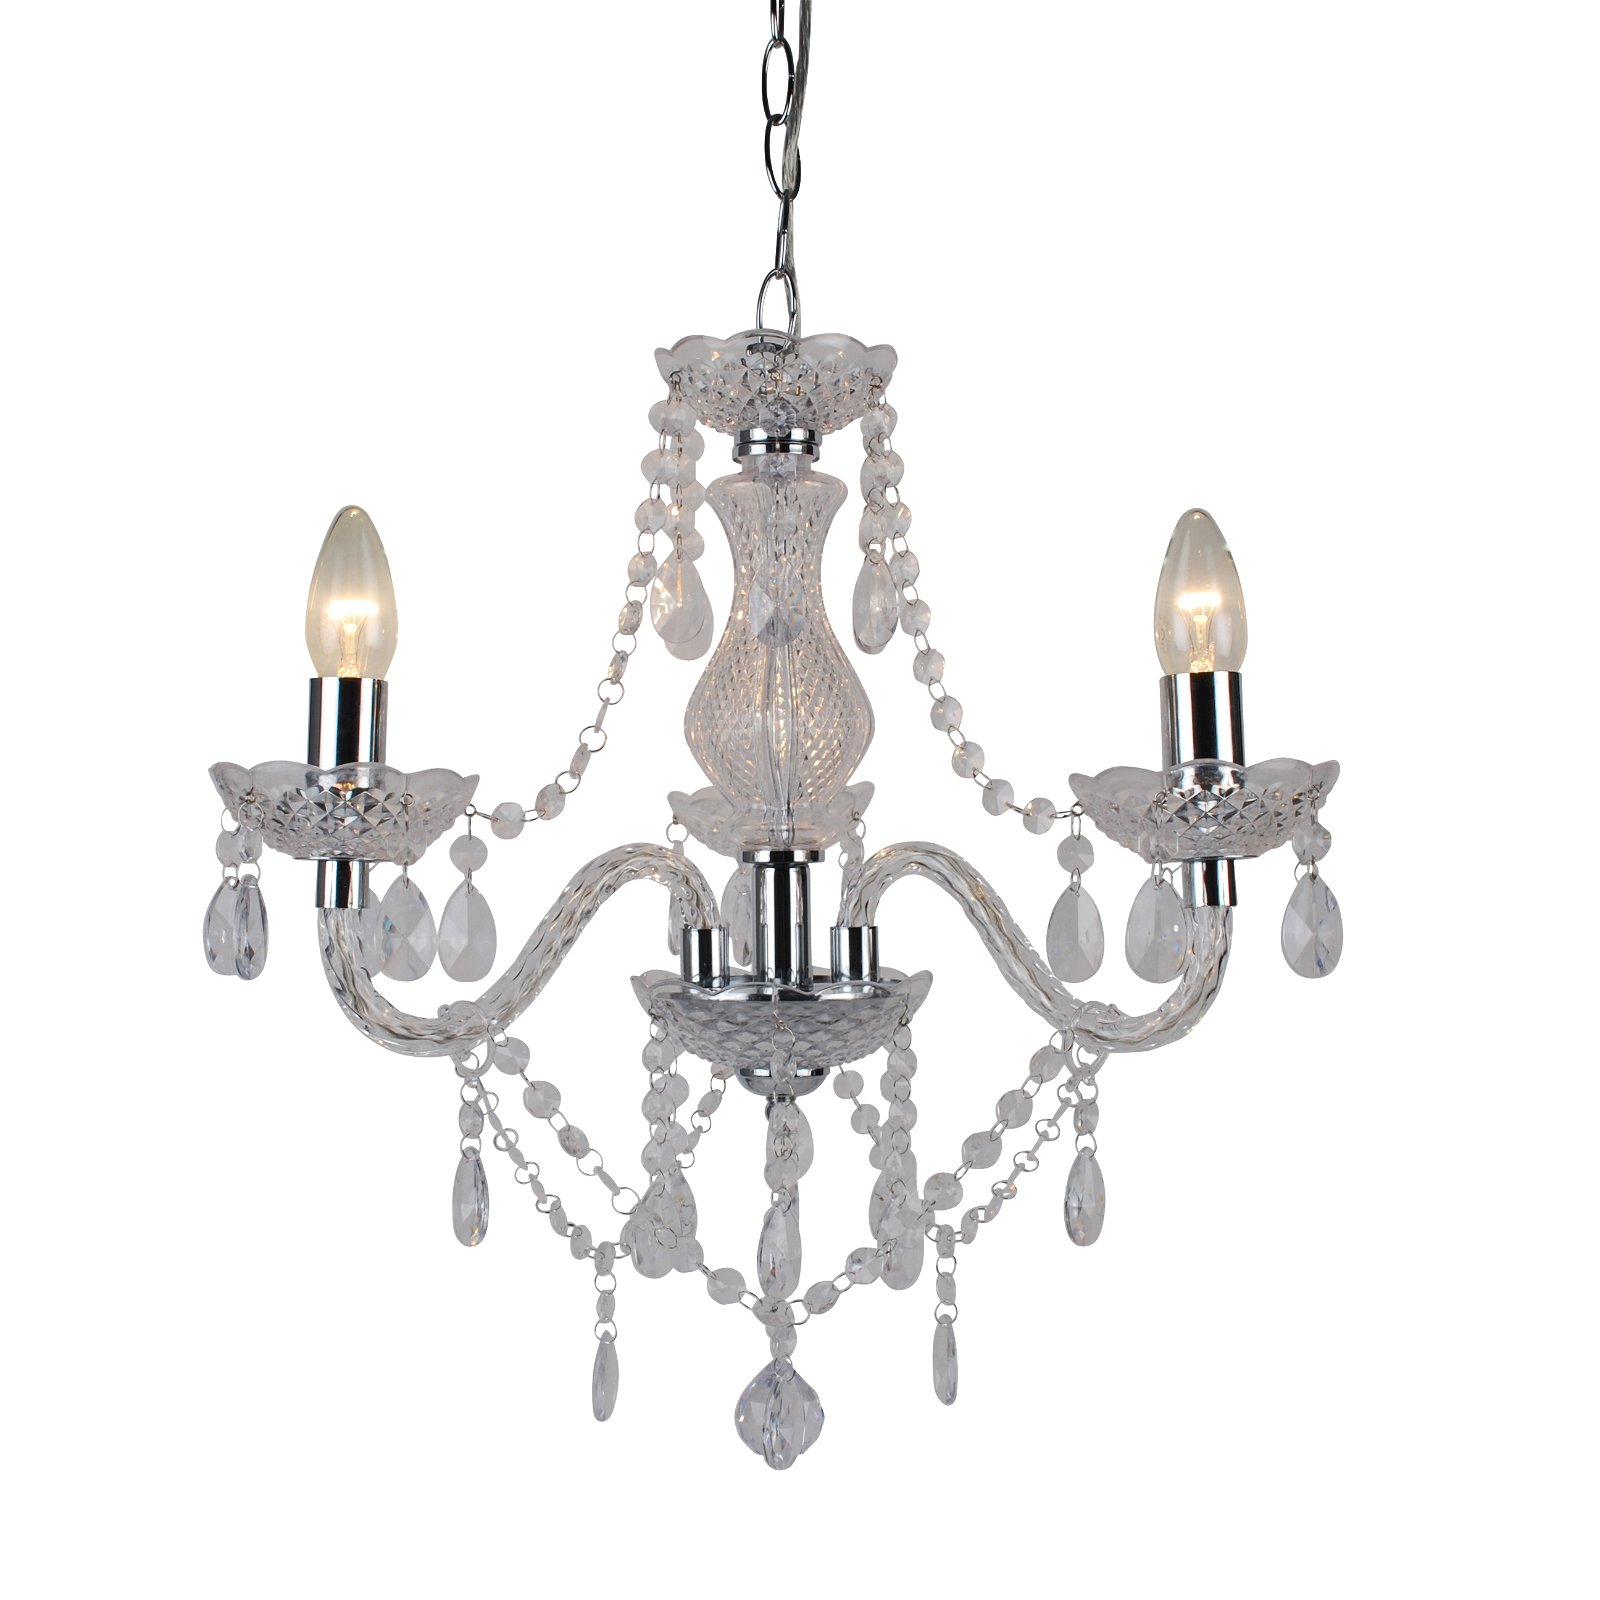 thumbnail 15 - Marie Therese 2, 3 & 5 Ceiling Light Acrylic Chandelier & Wall Clear Black